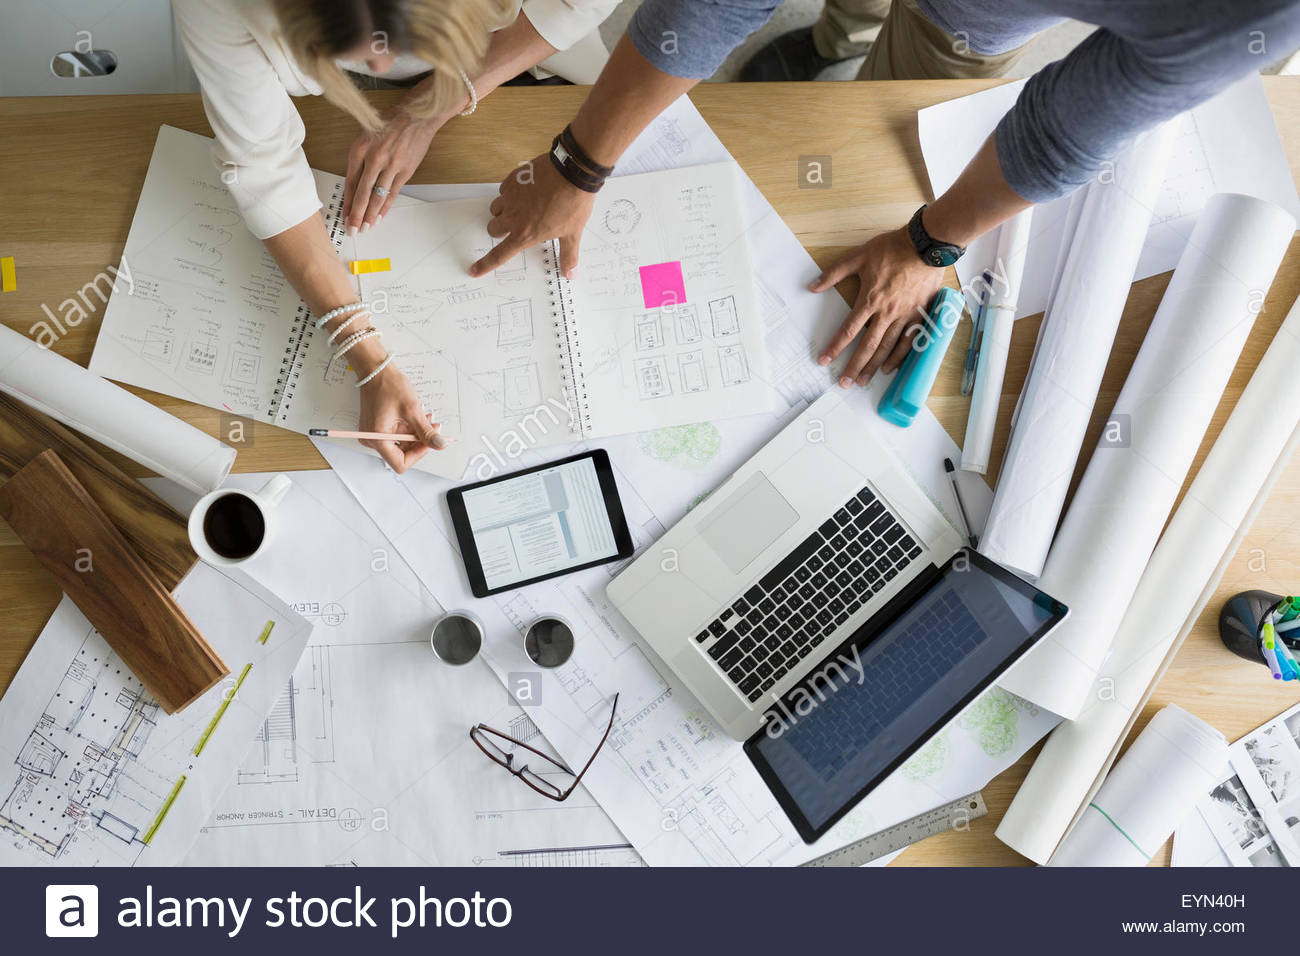 Overhead view architects drafting blueprints at table - Stock Image